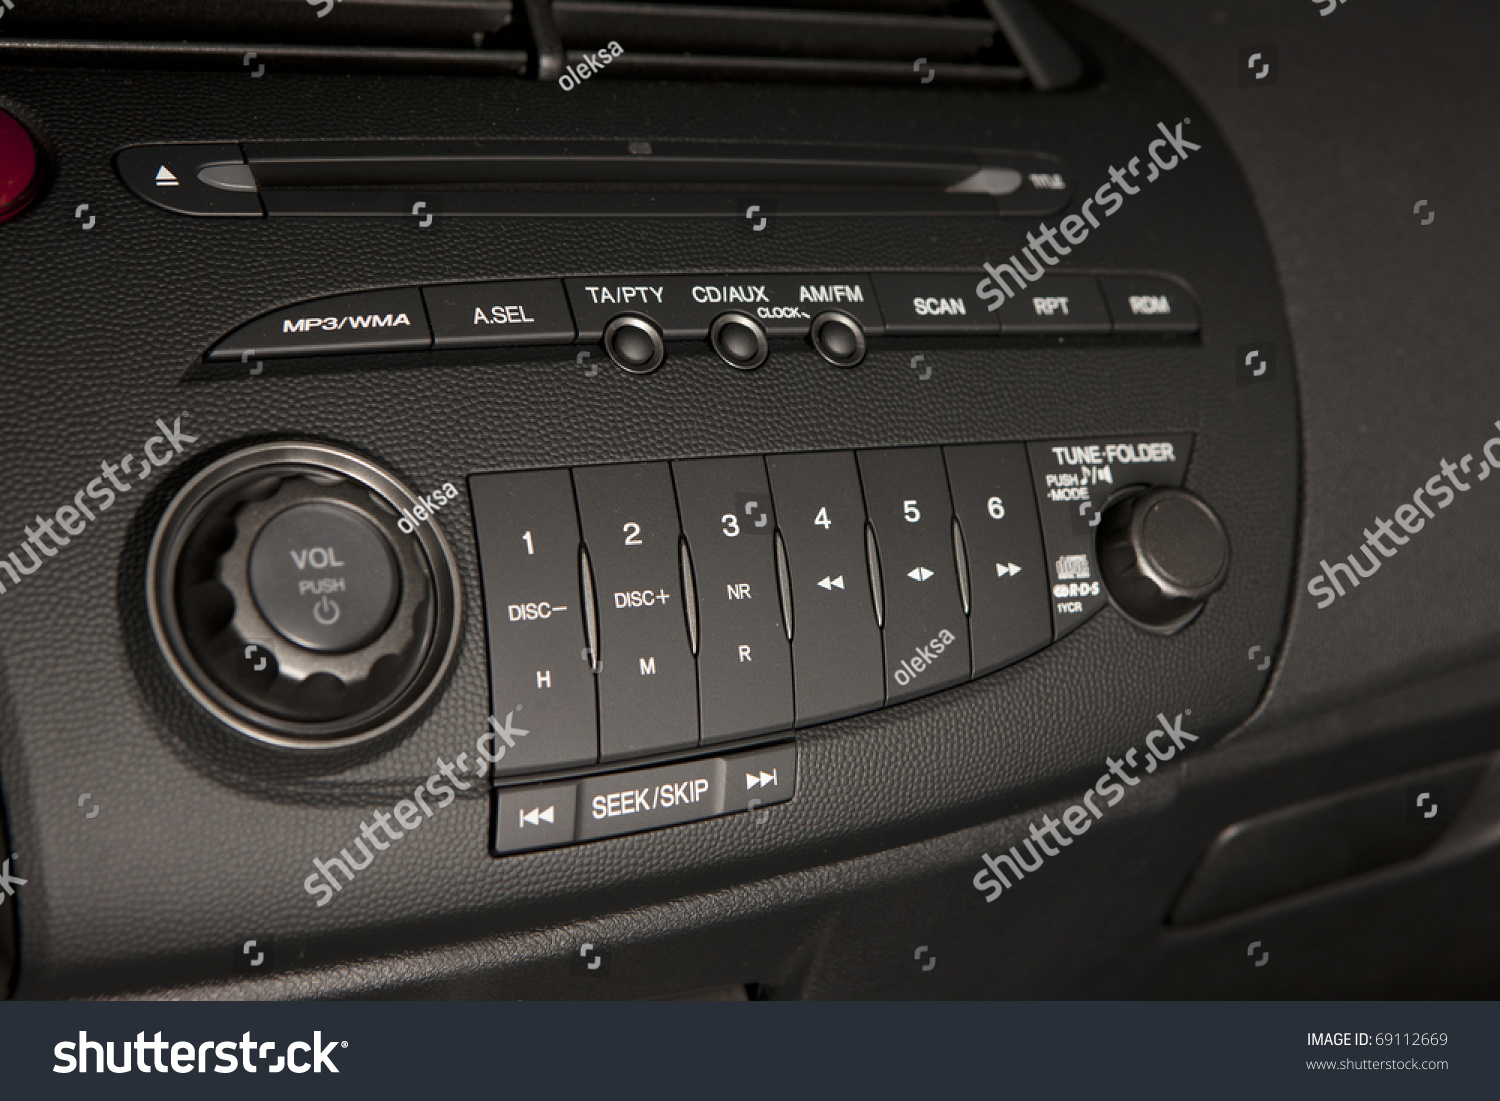 Vehicle Control Panel : New car audio control panel stock photo